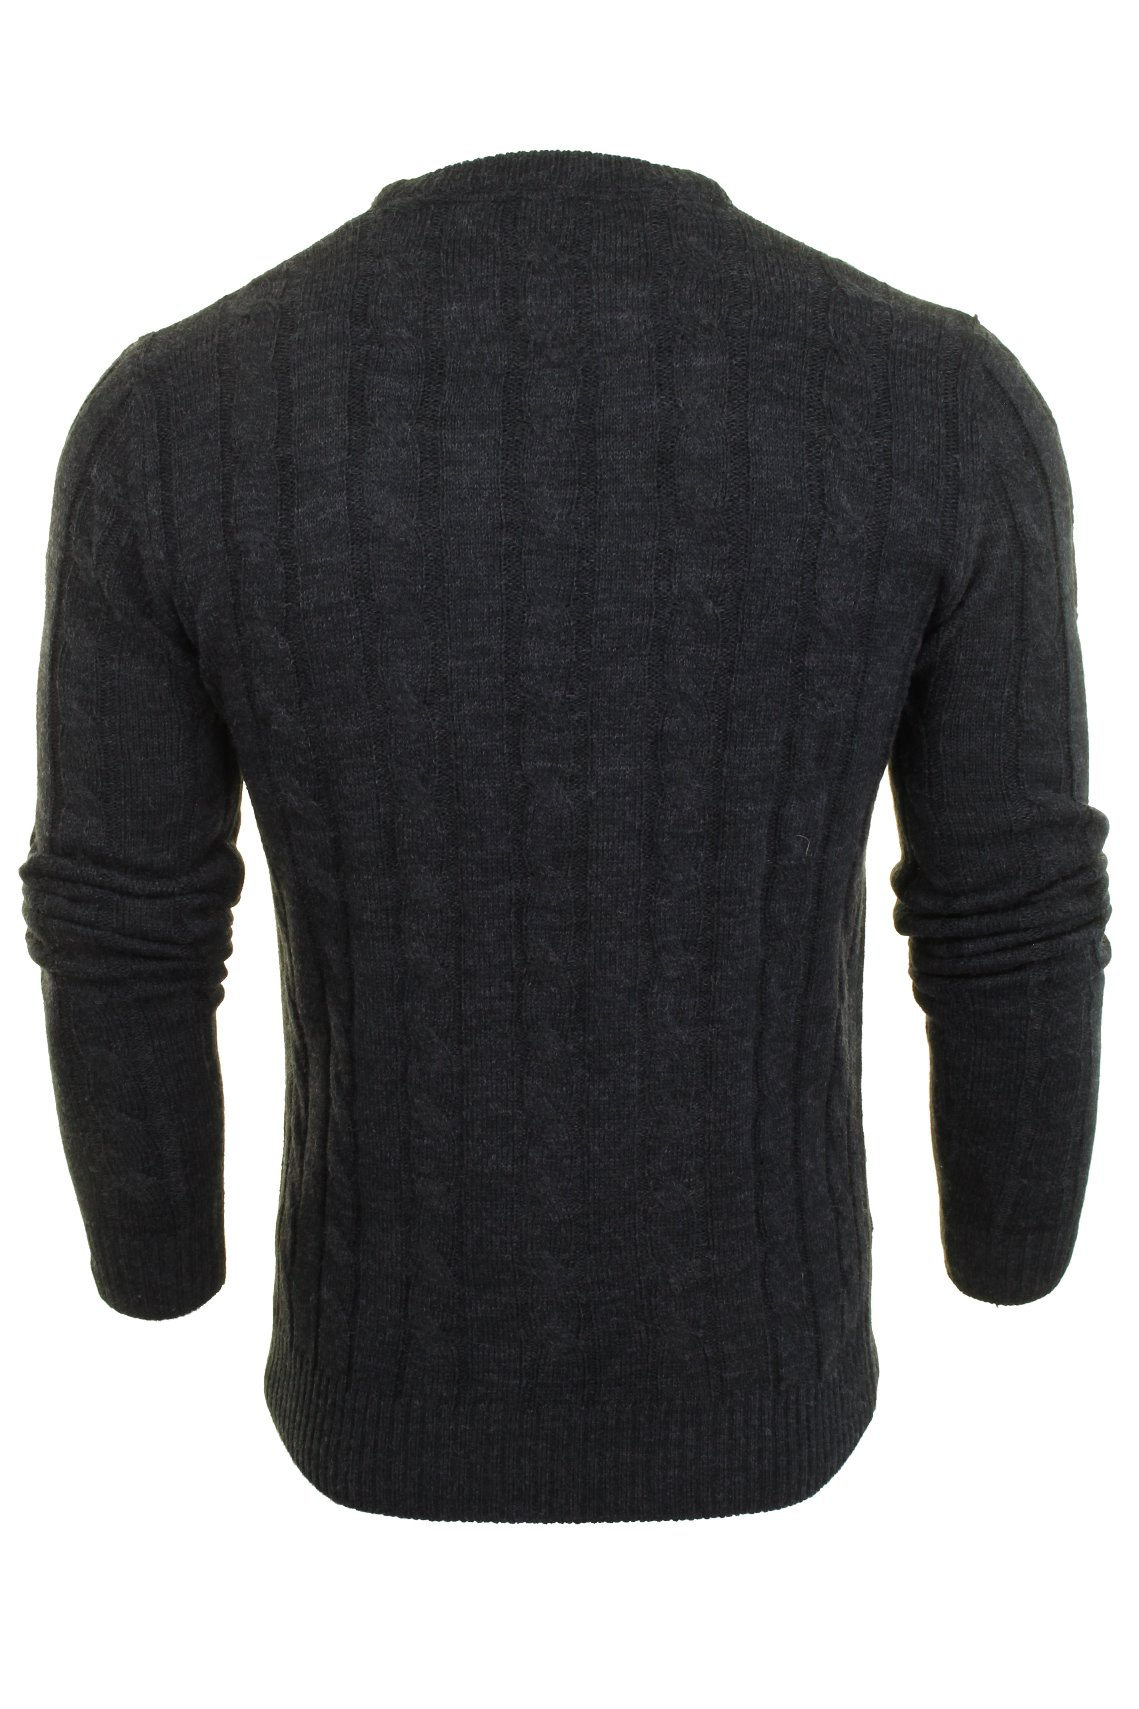 Brave-Soul-039-Maoism-039-Mens-Cable-Knit-Jumper thumbnail 8